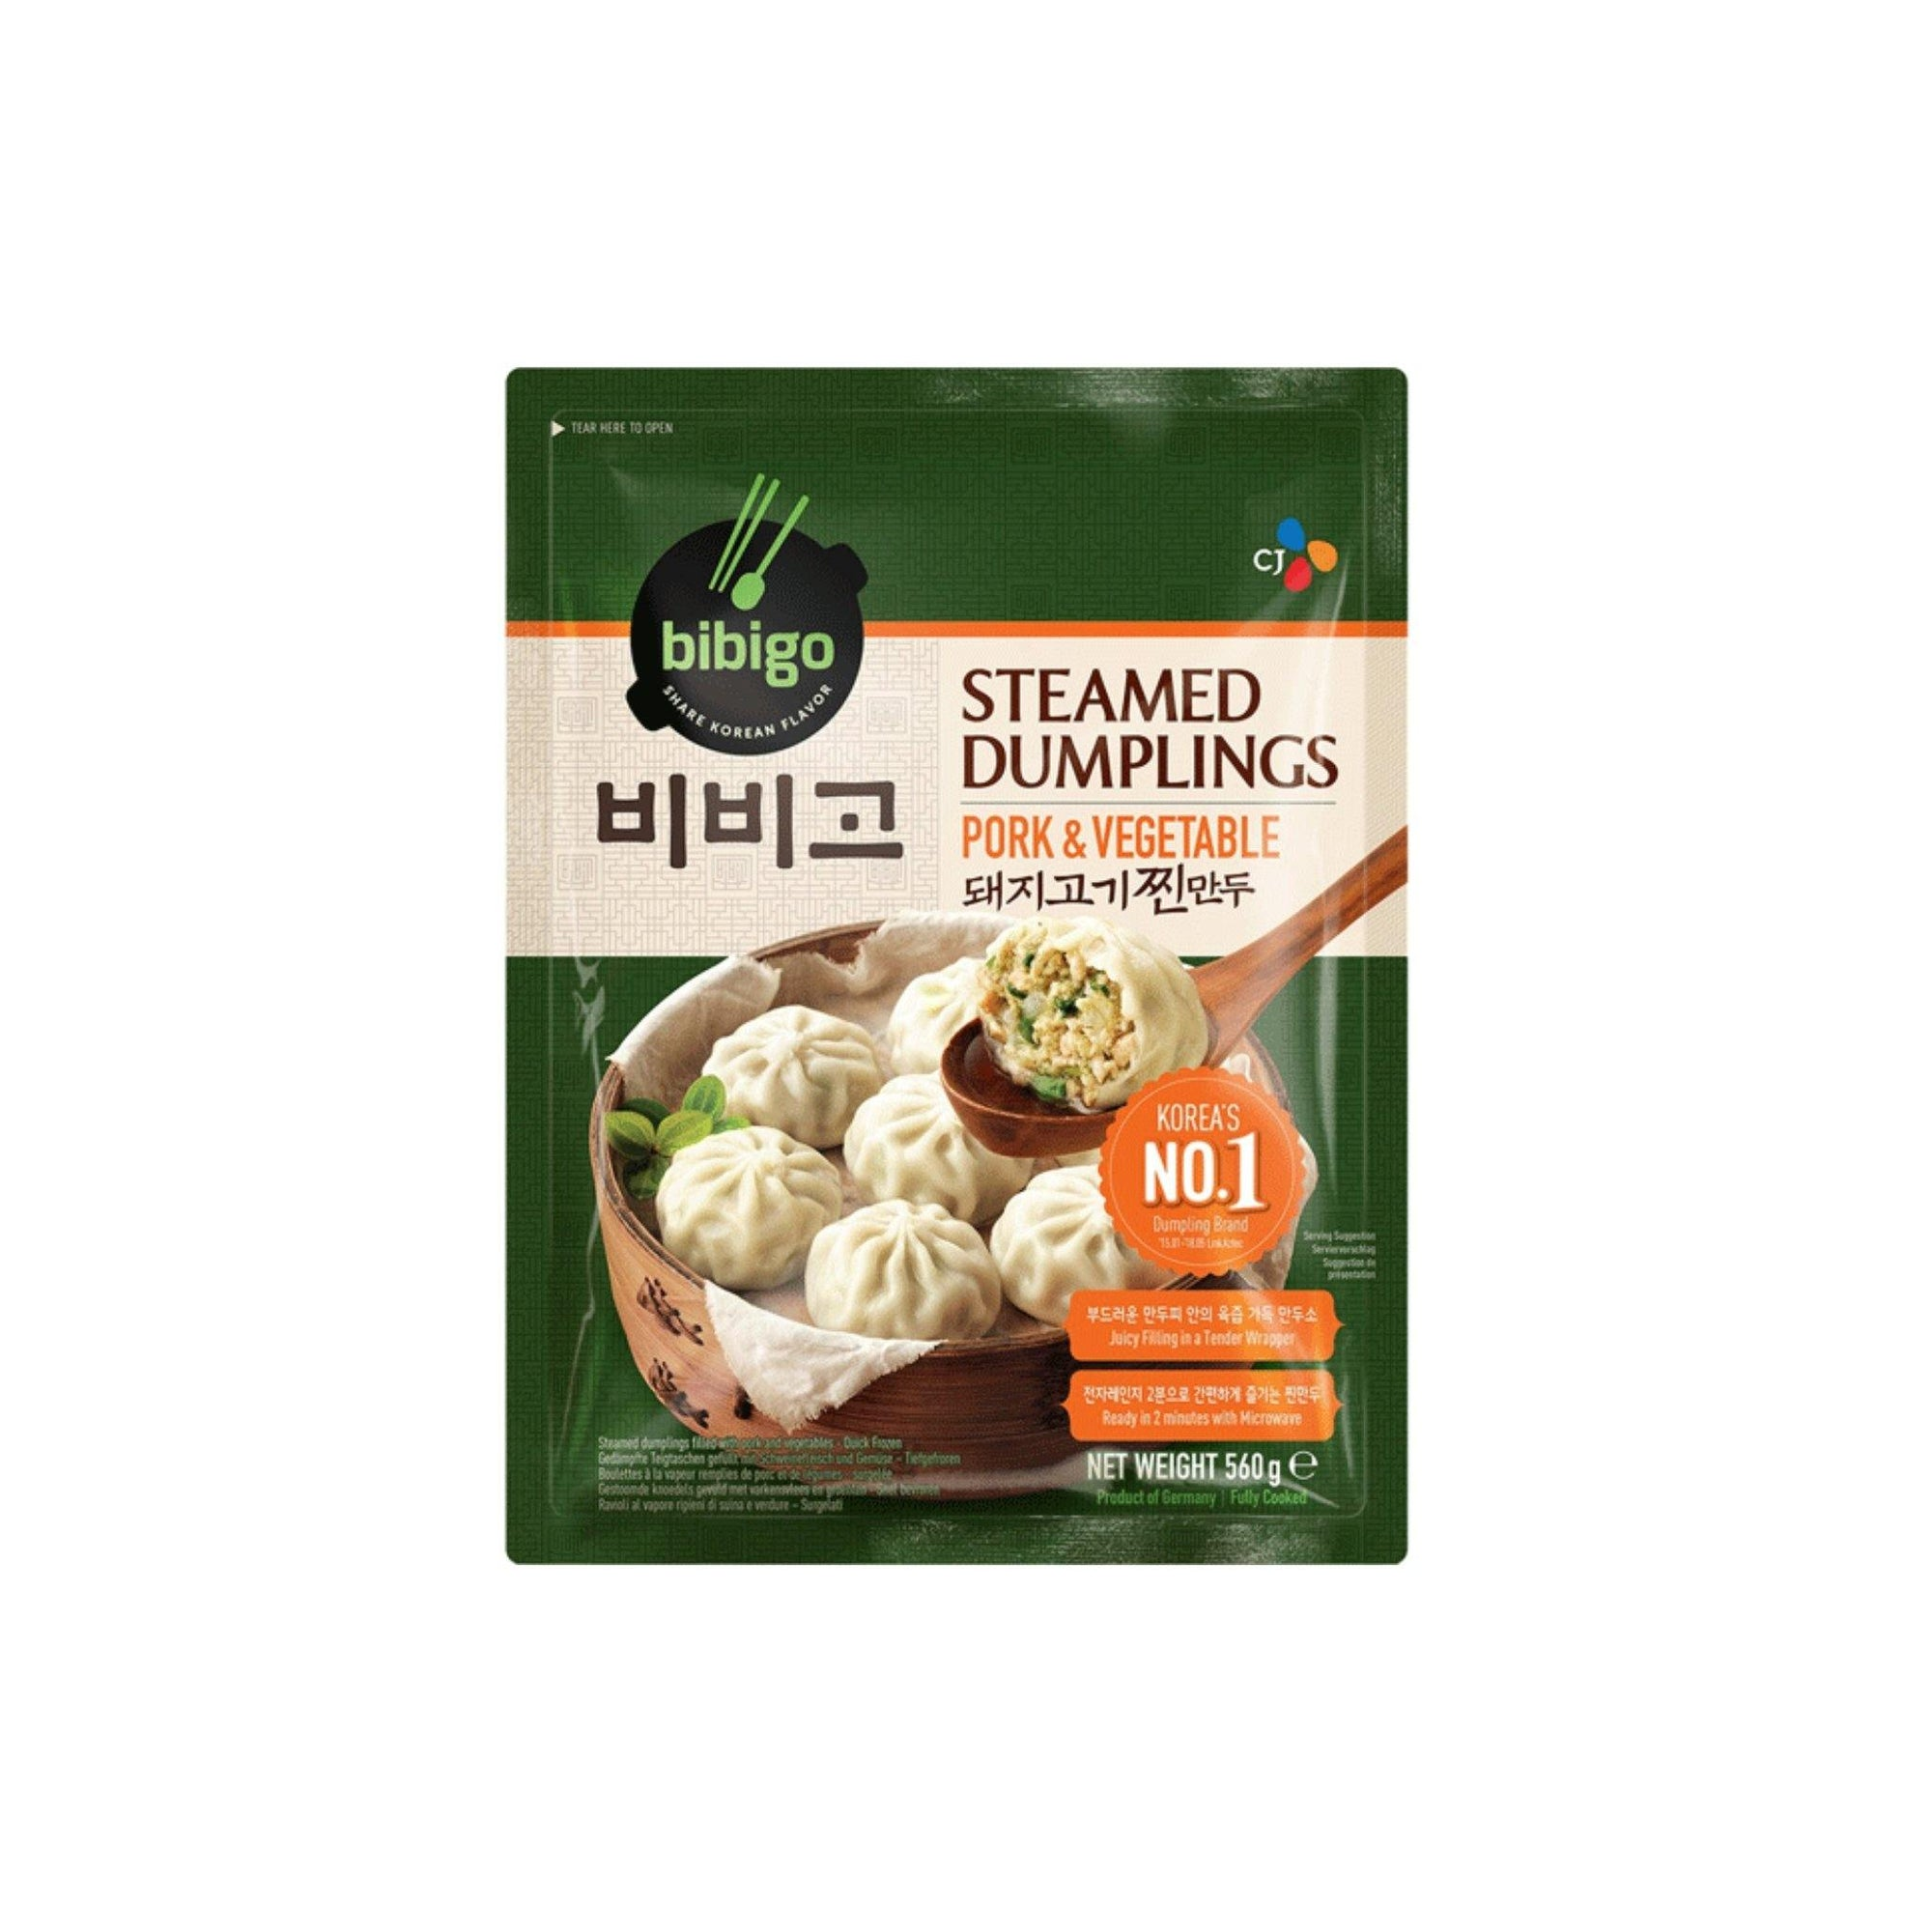 Bibigo Pork and Veg Steamed Dumpling 560G - Asian Harvest